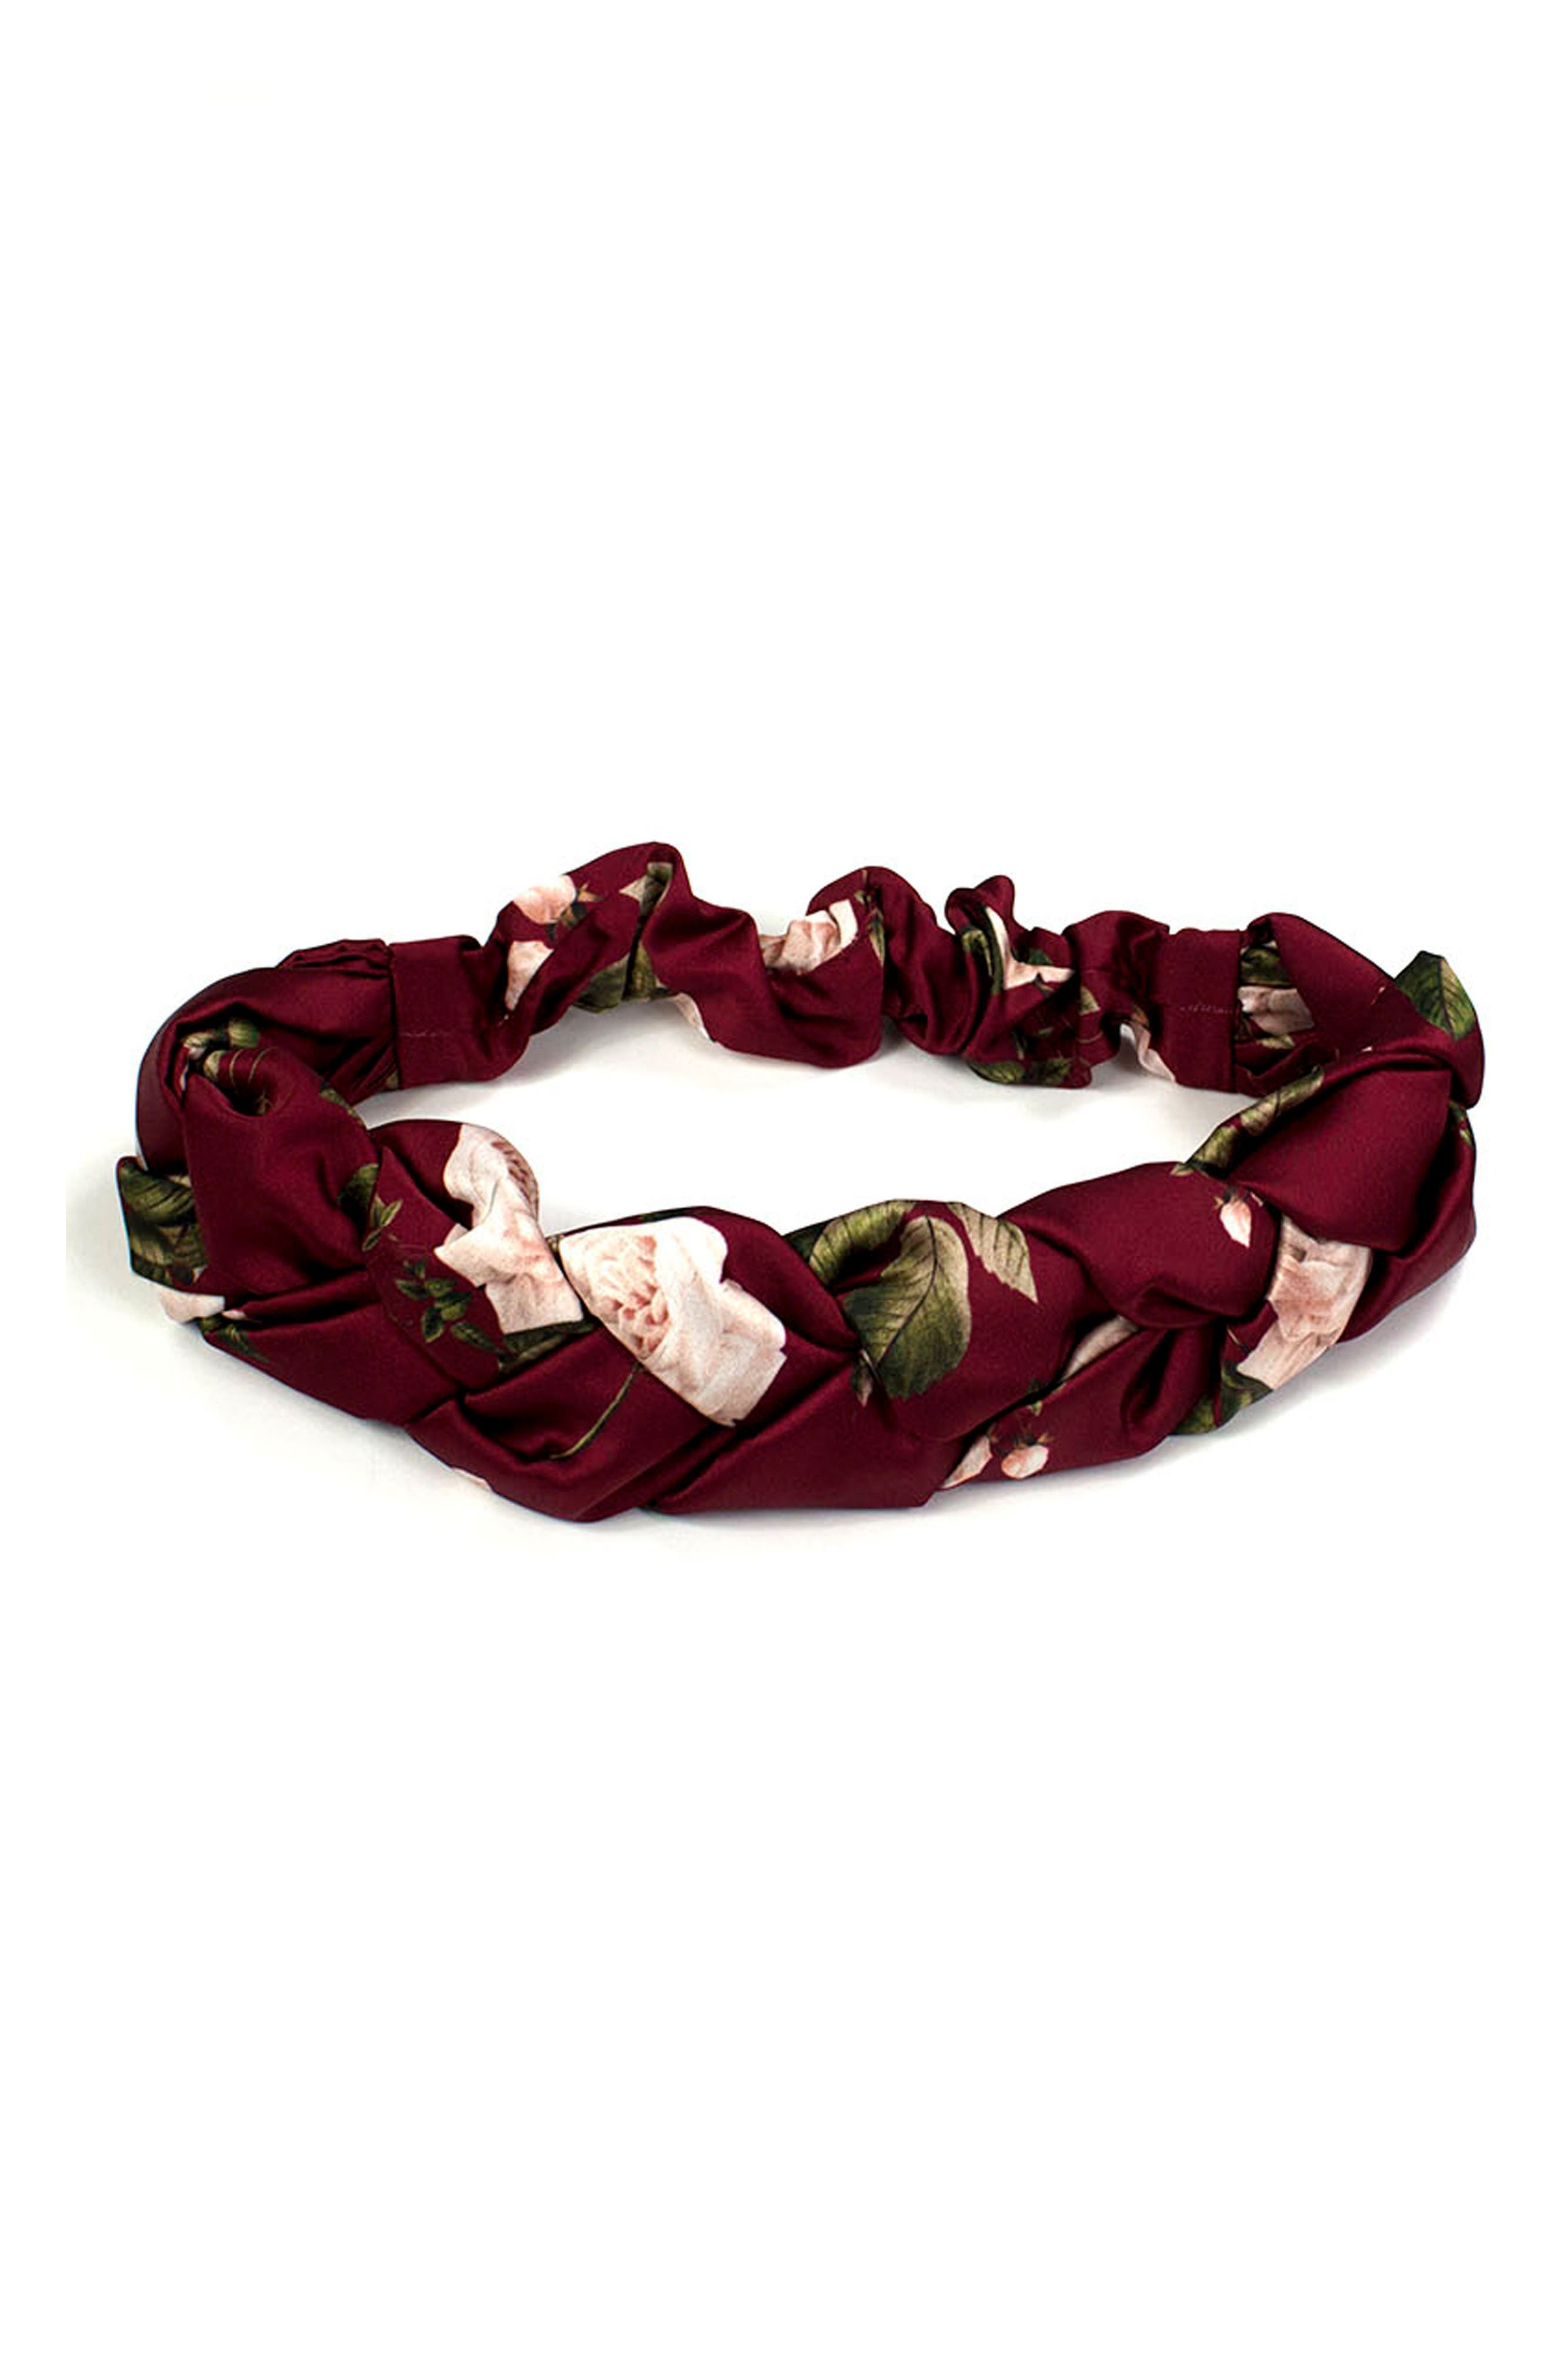 New Friends Colony Winter Rose Braided Head Wrap